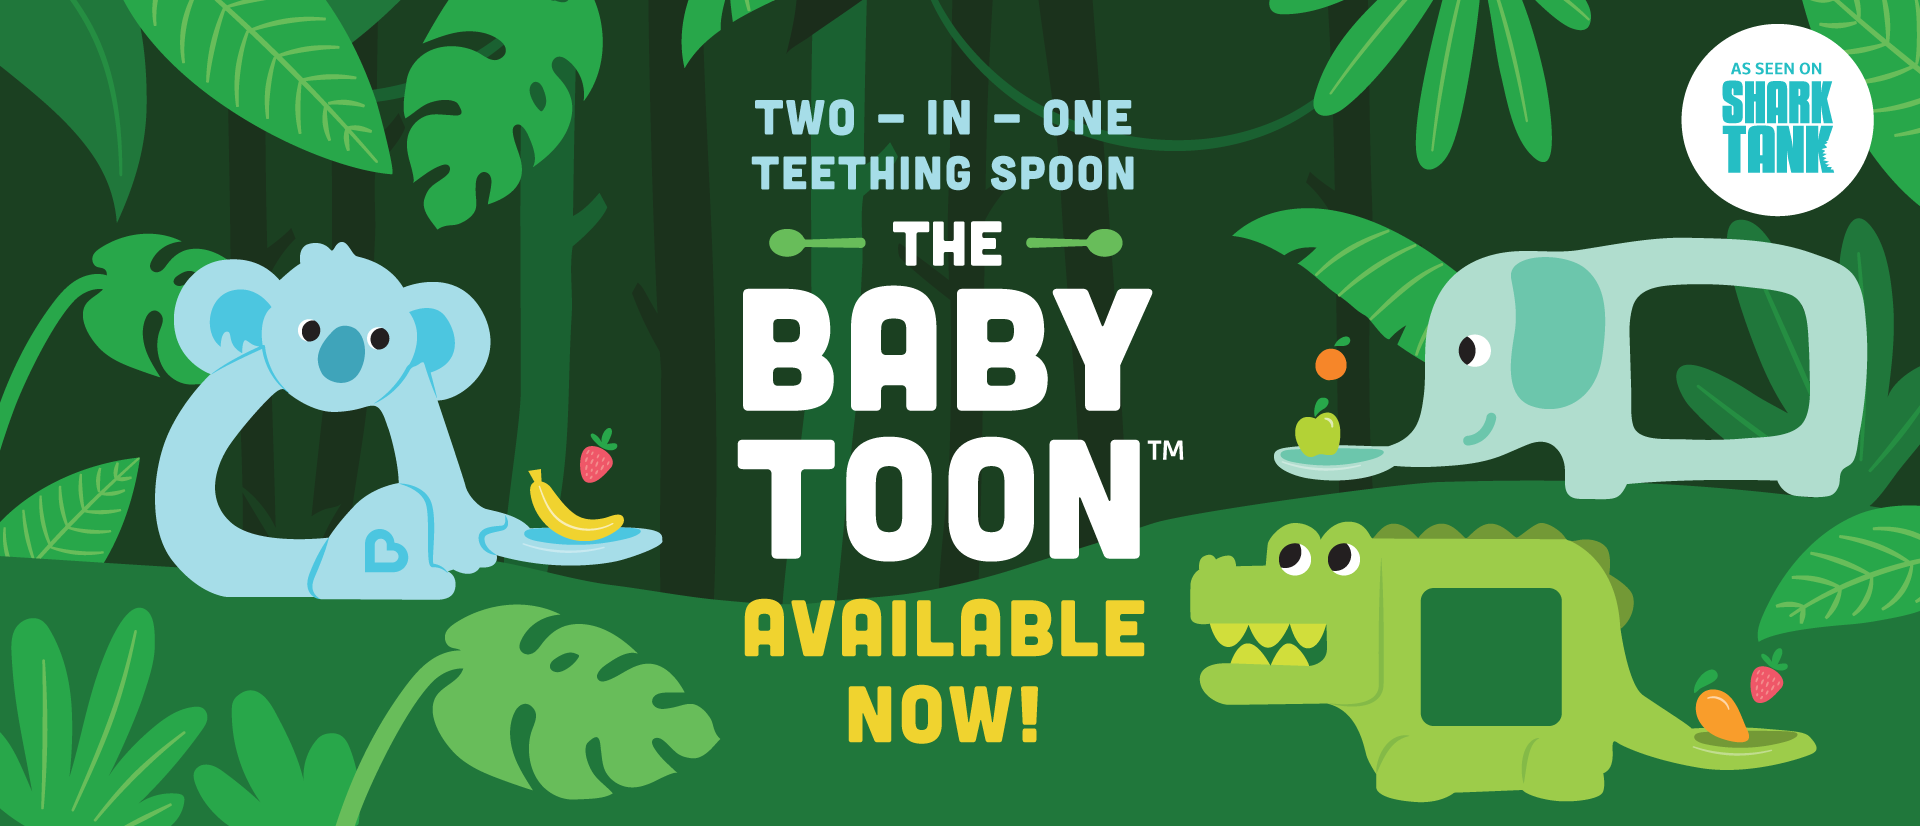 The Baby Toon